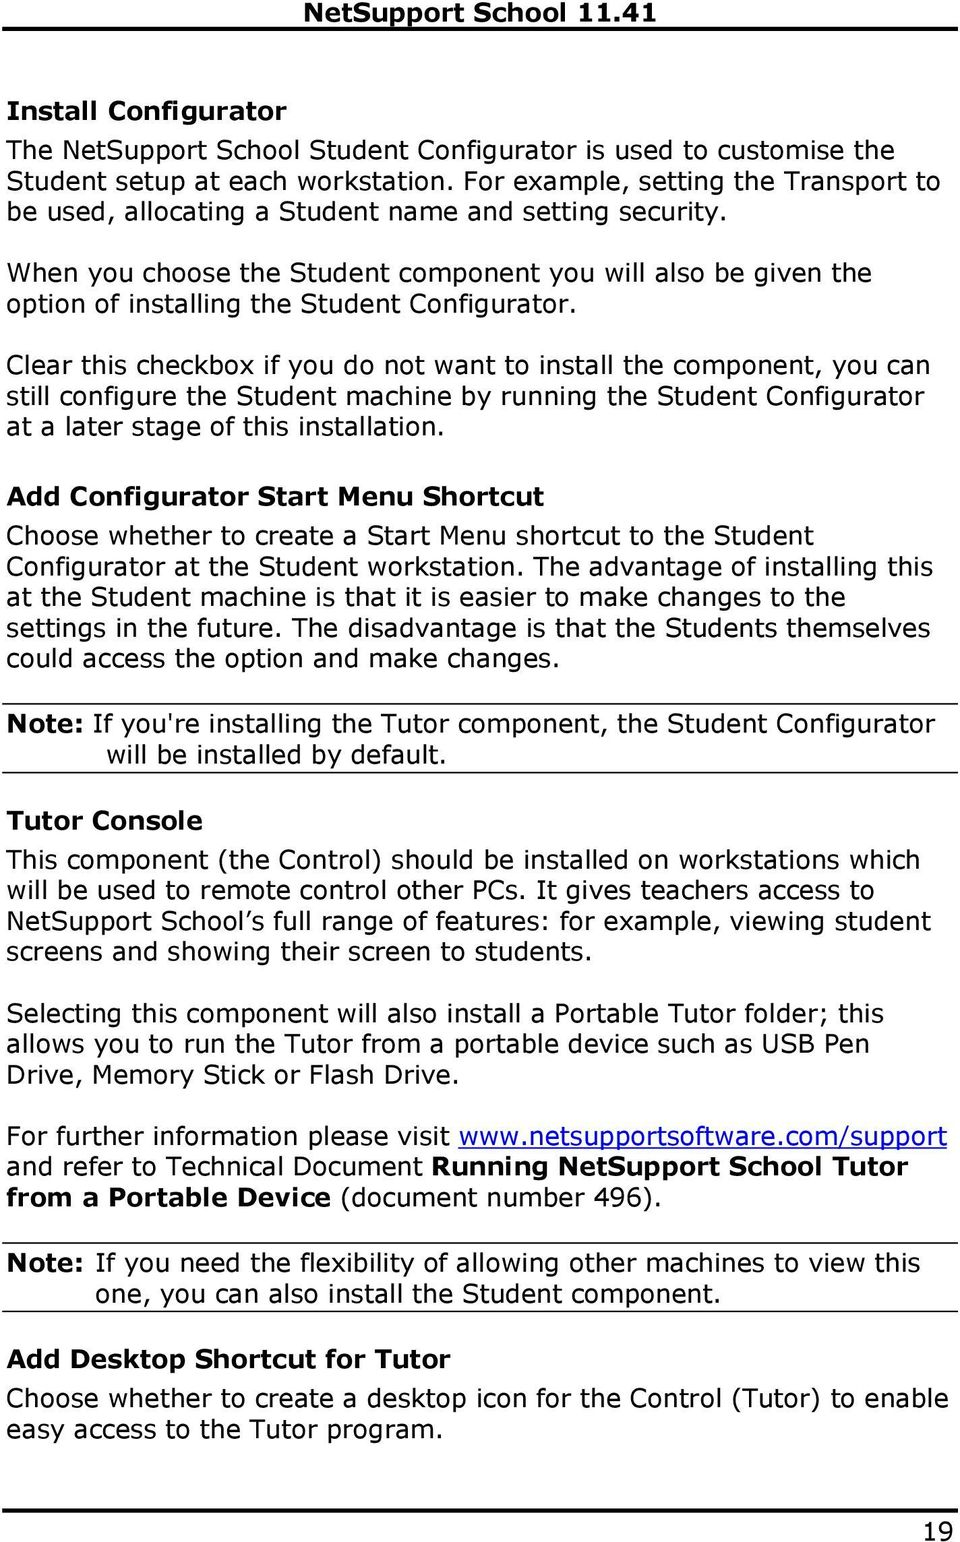 When you choose the Student component you will also be given the option of installing the Student Configurator.